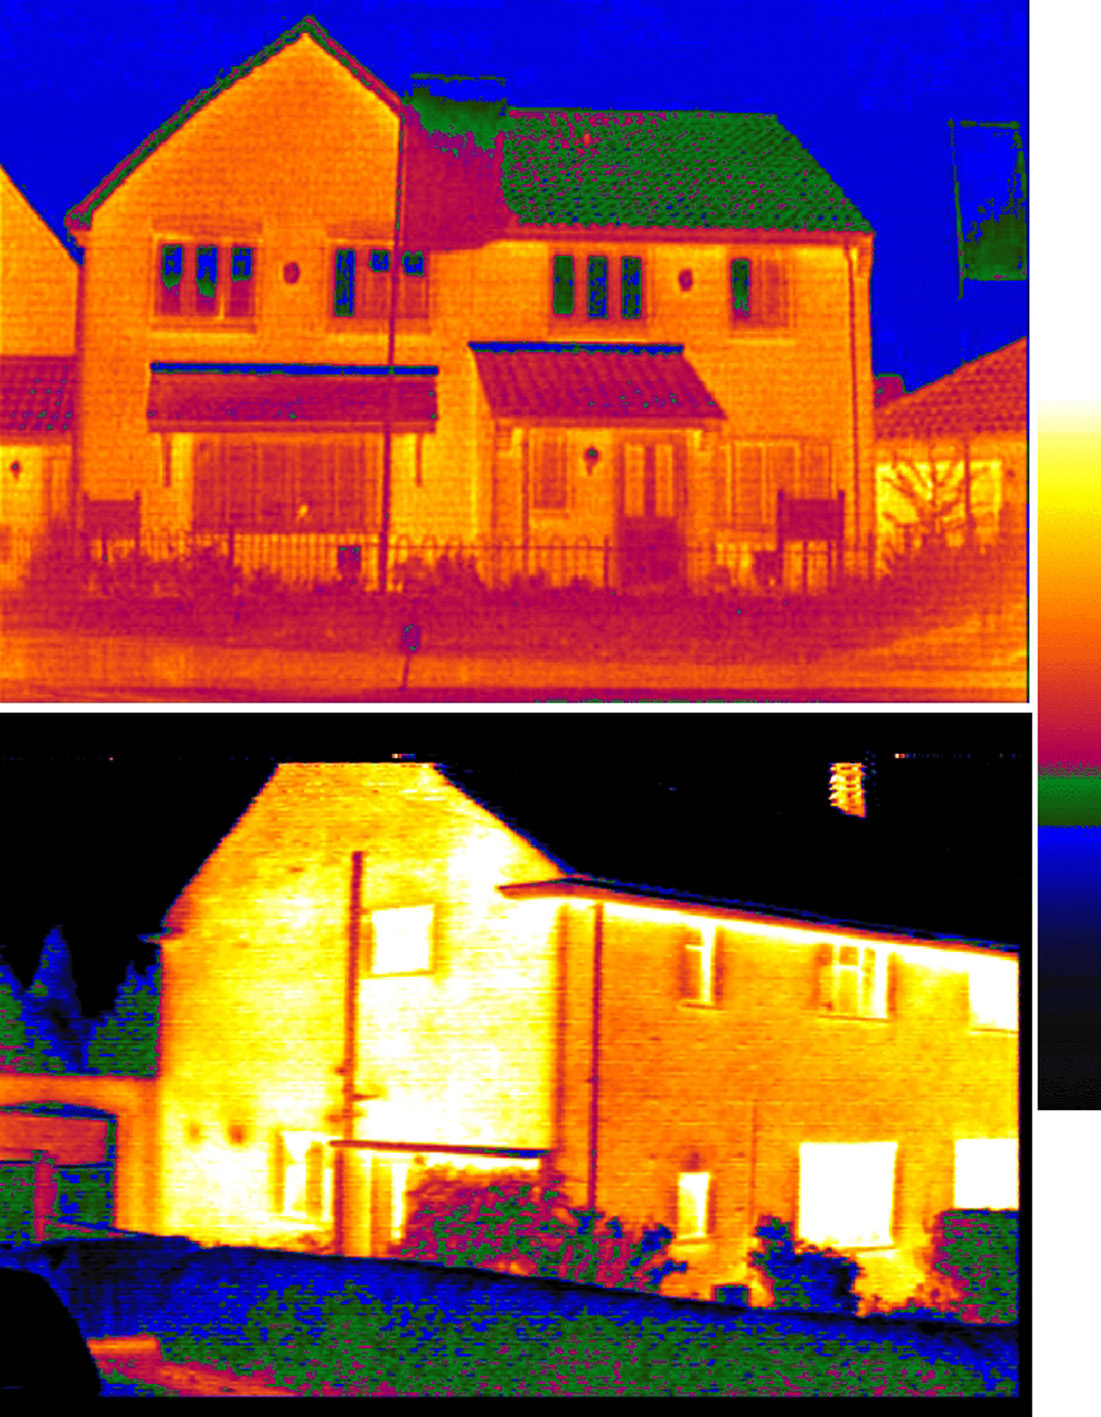 Taylor Wimpey - Thermal Imagery